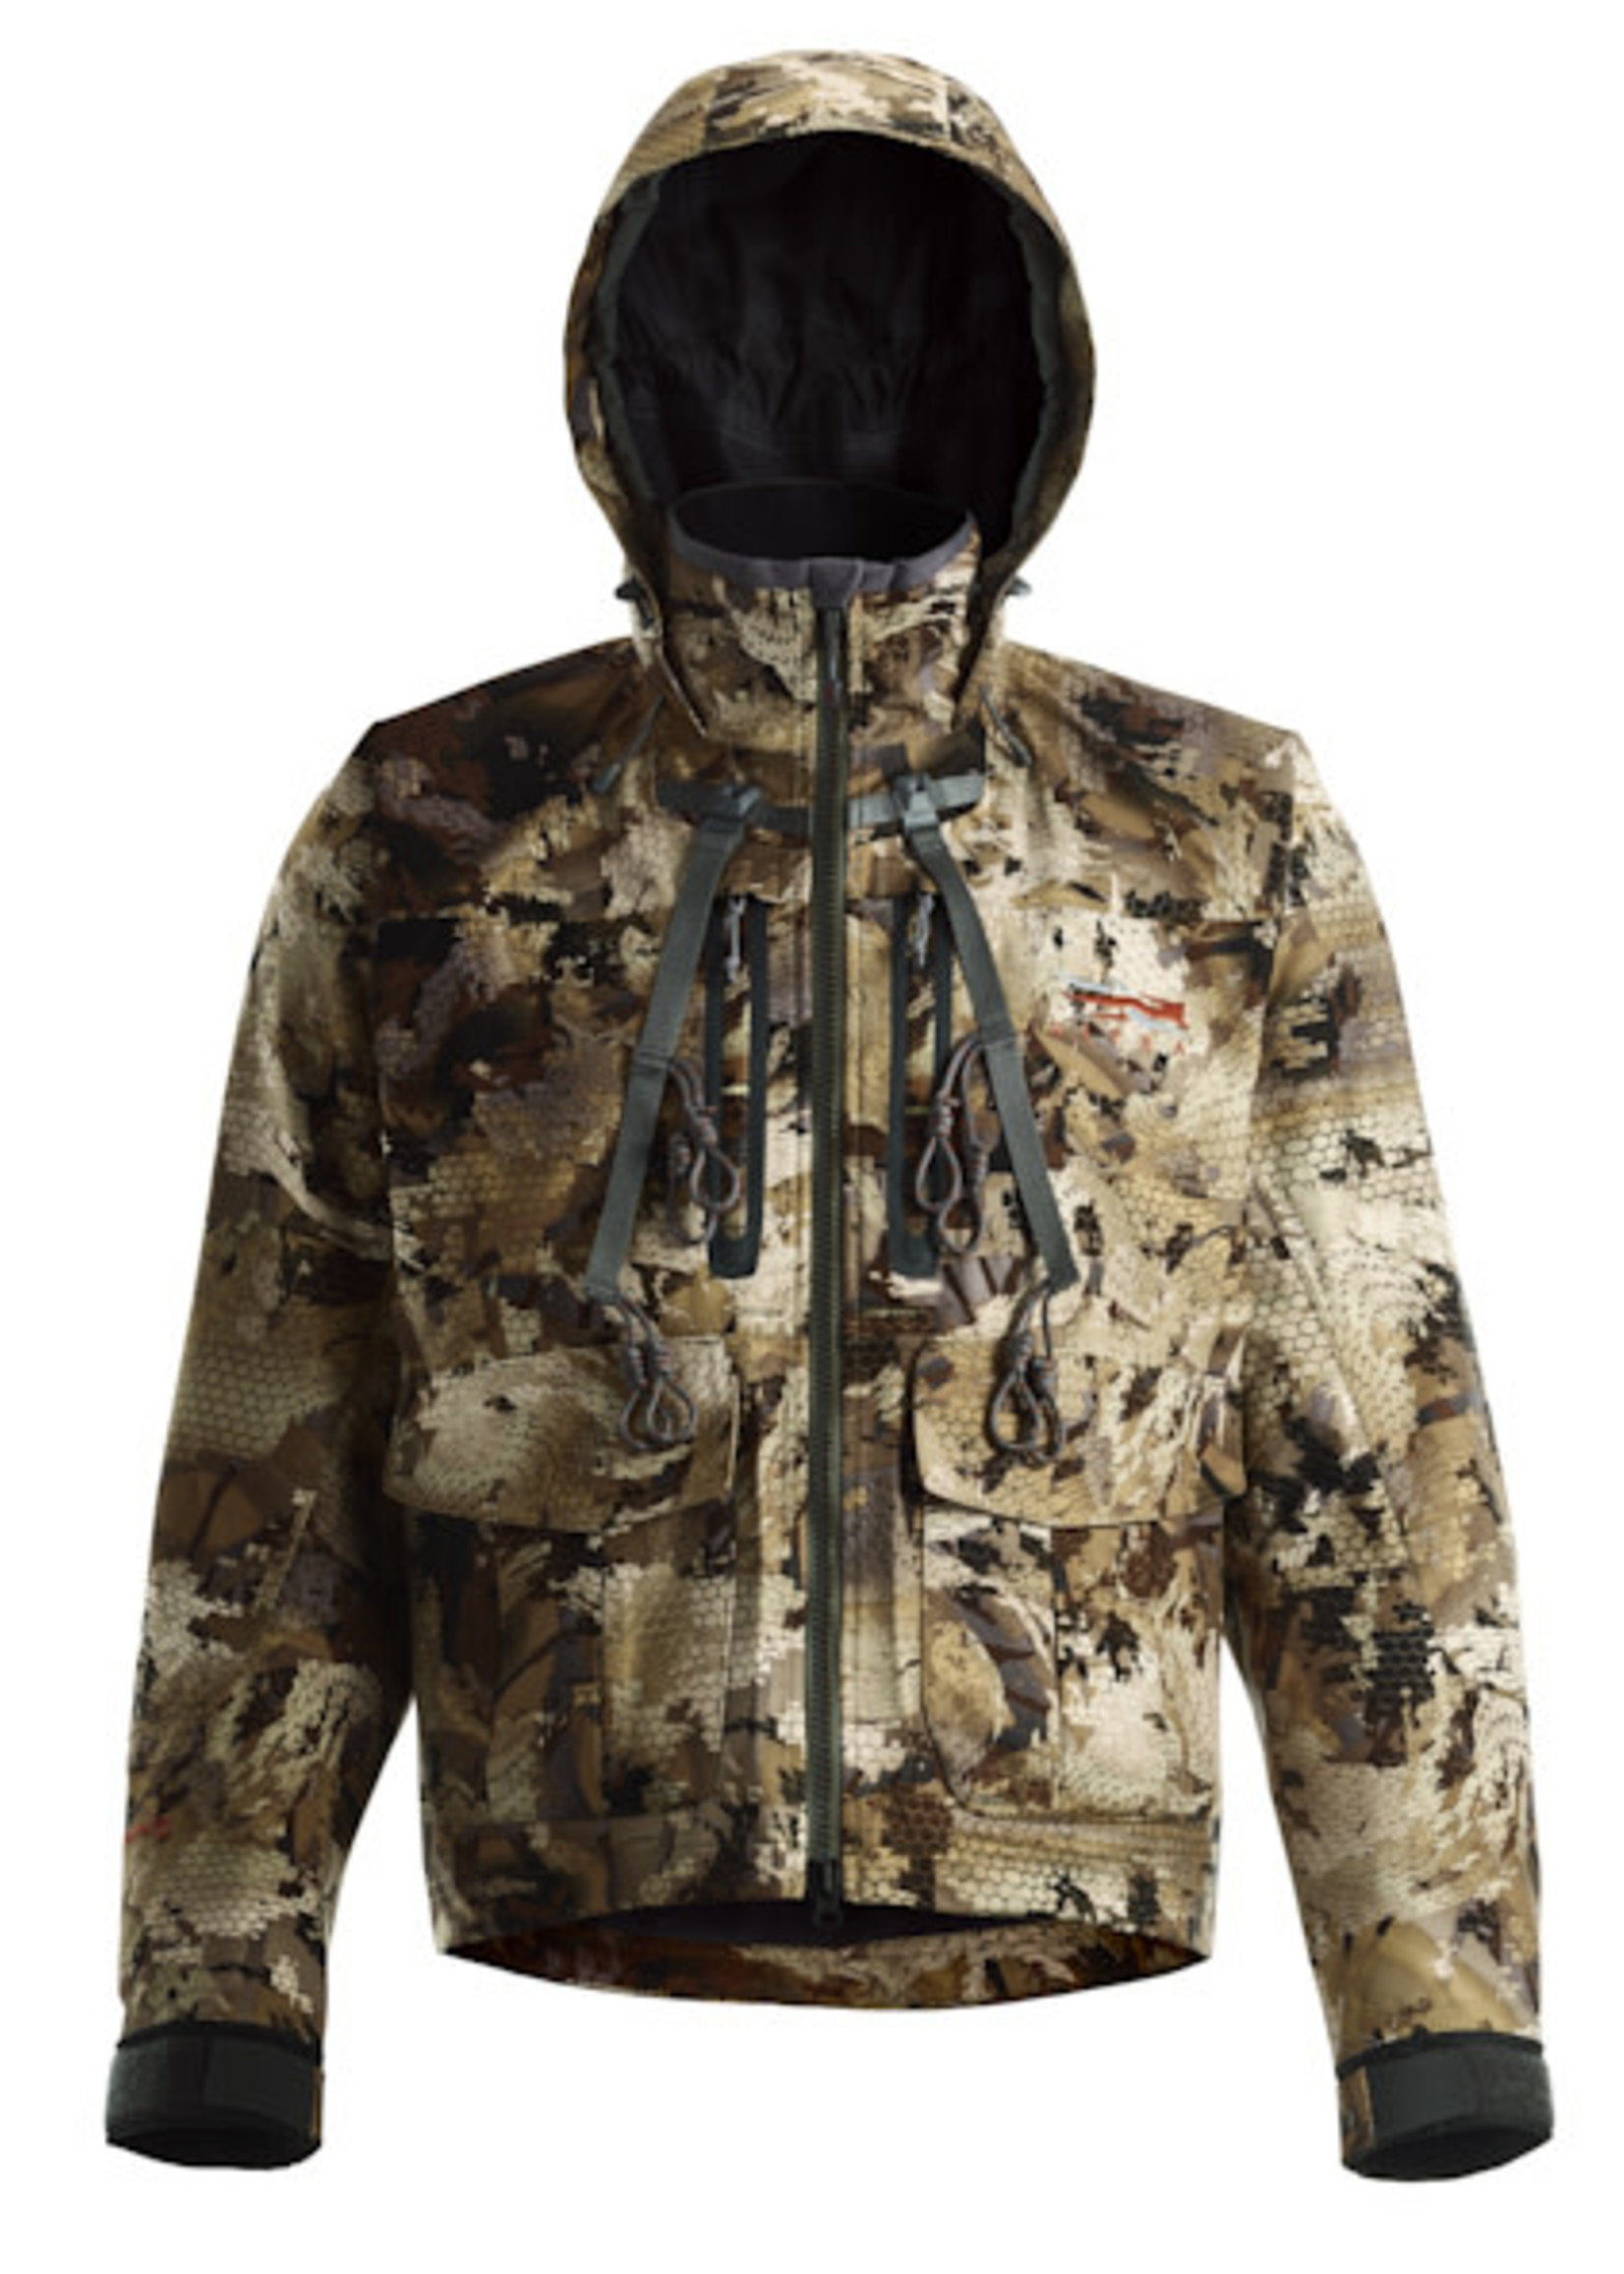 Sitka Gear Delta Wading Jacket Waterfowl Marsh